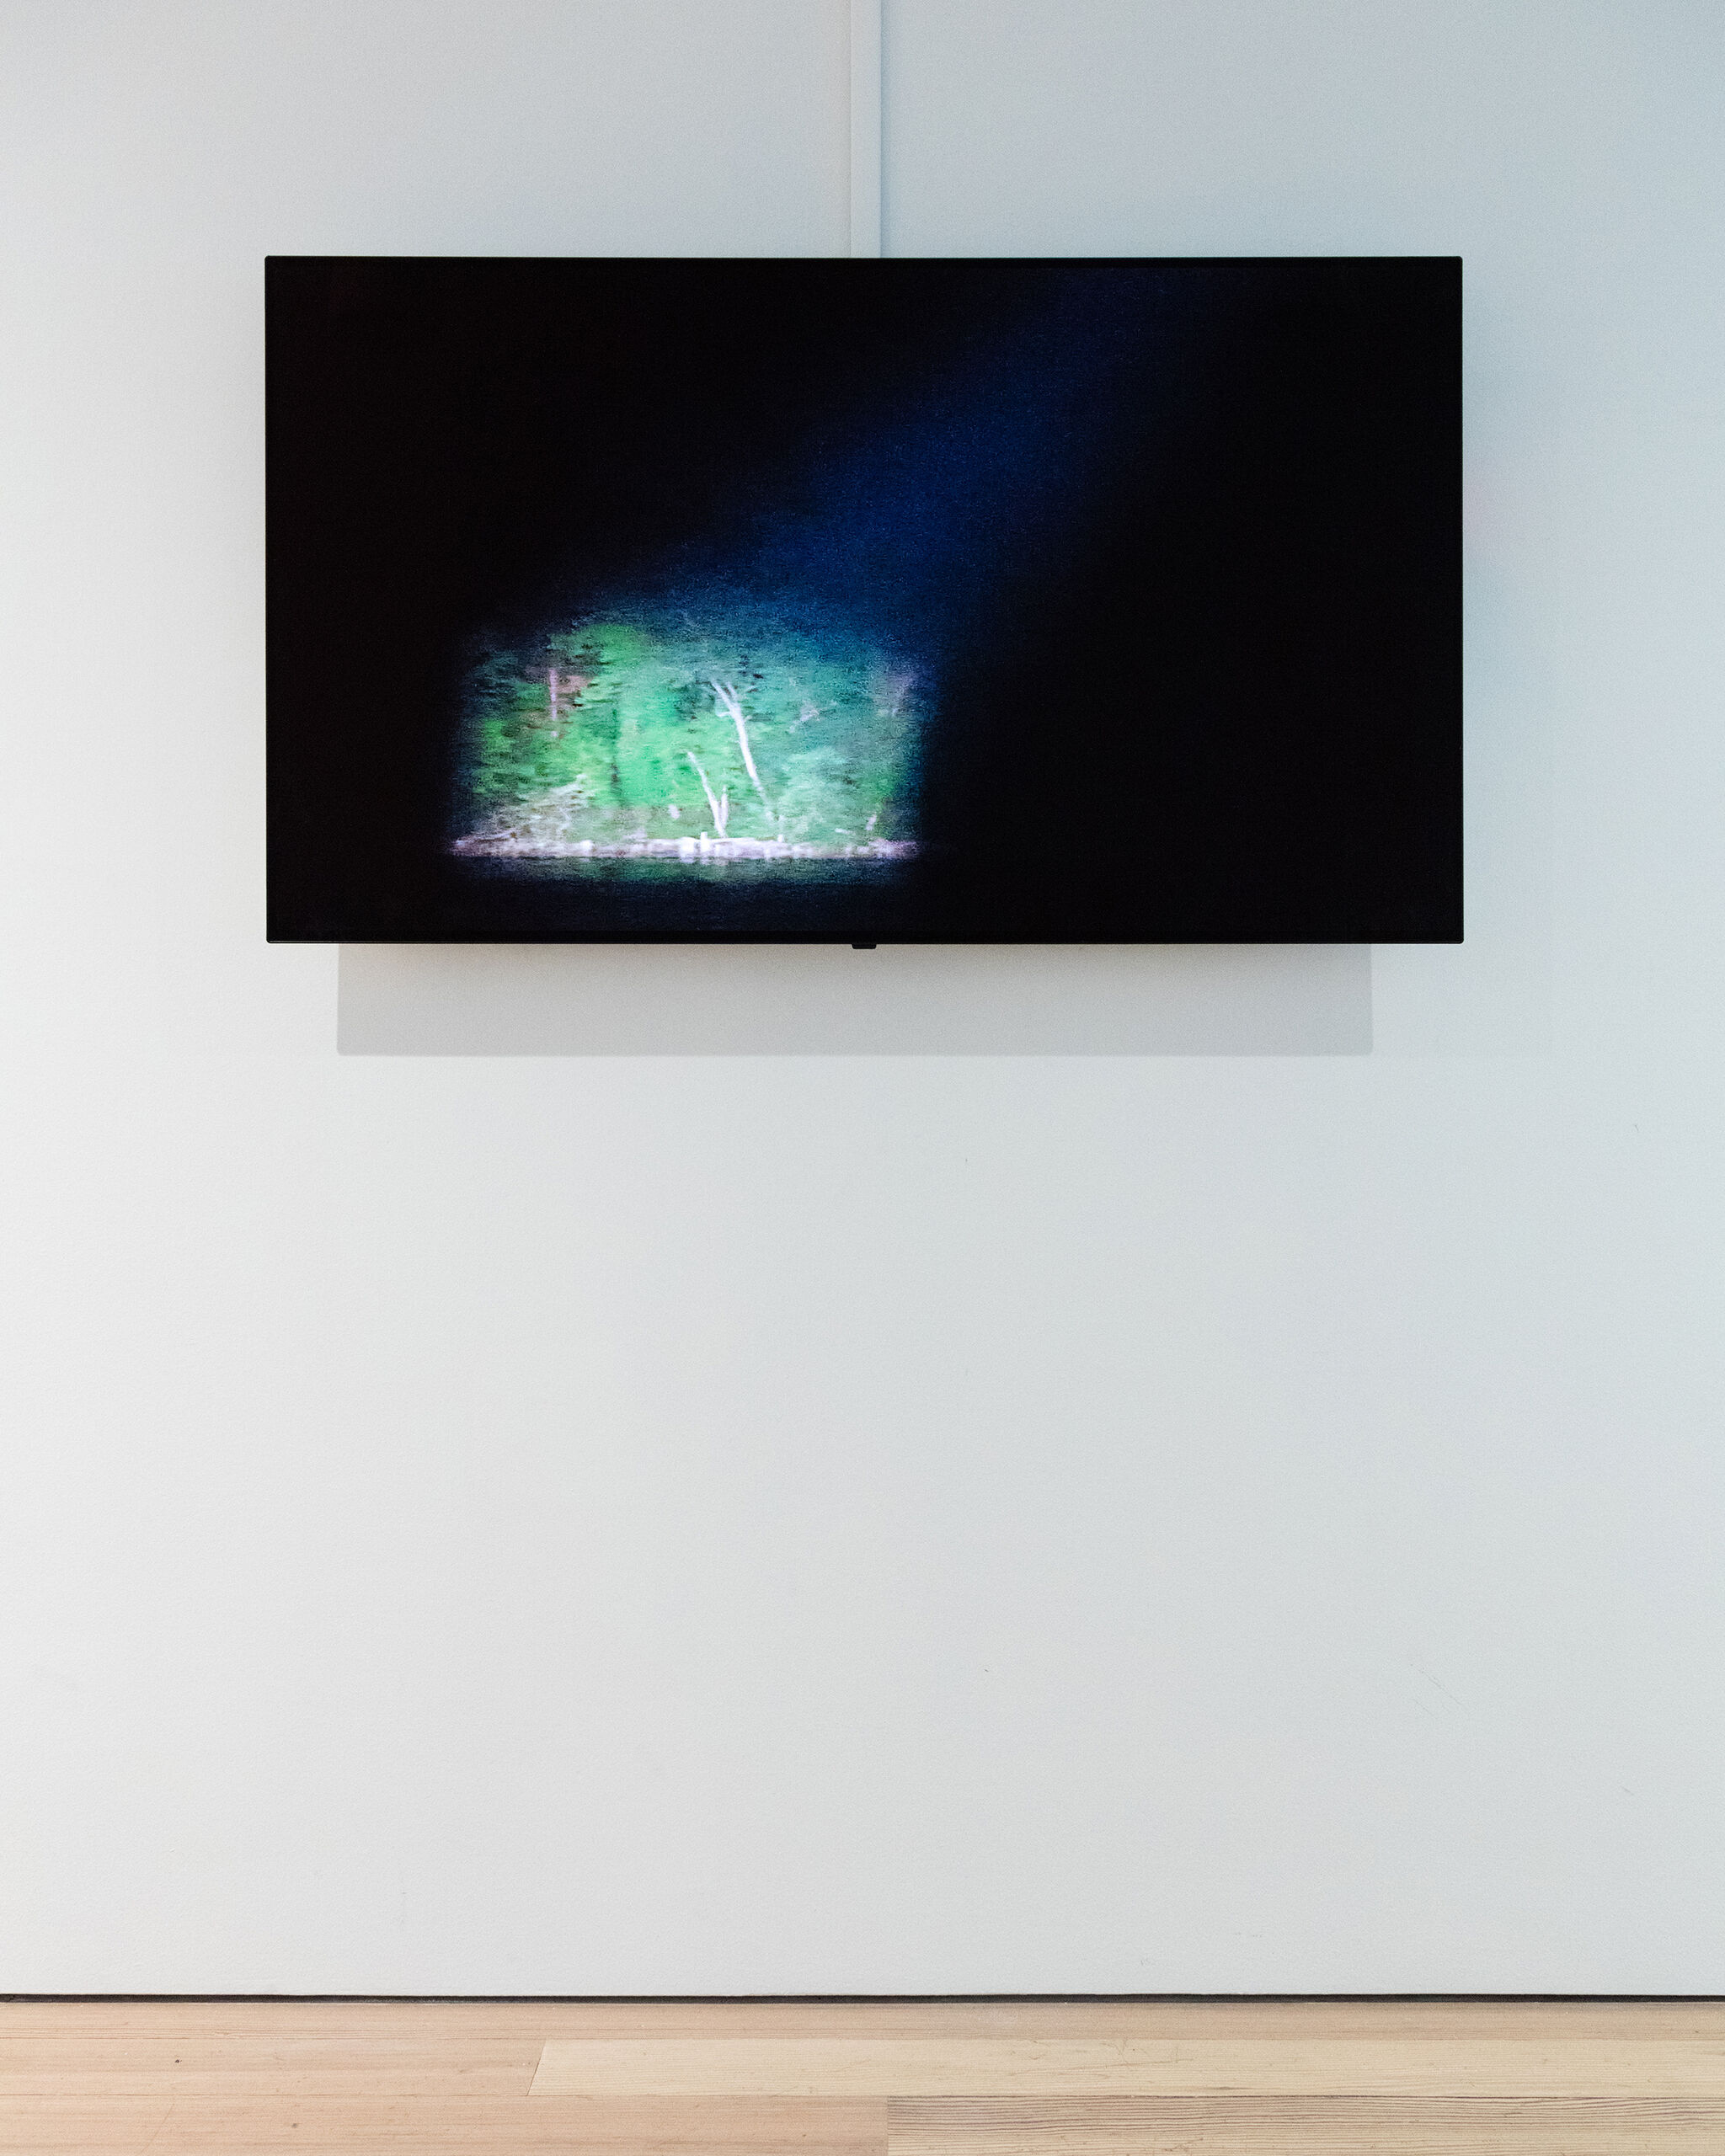 A monitor in a gallery displaying a nighttime view of a spotlight pointed at green trees.